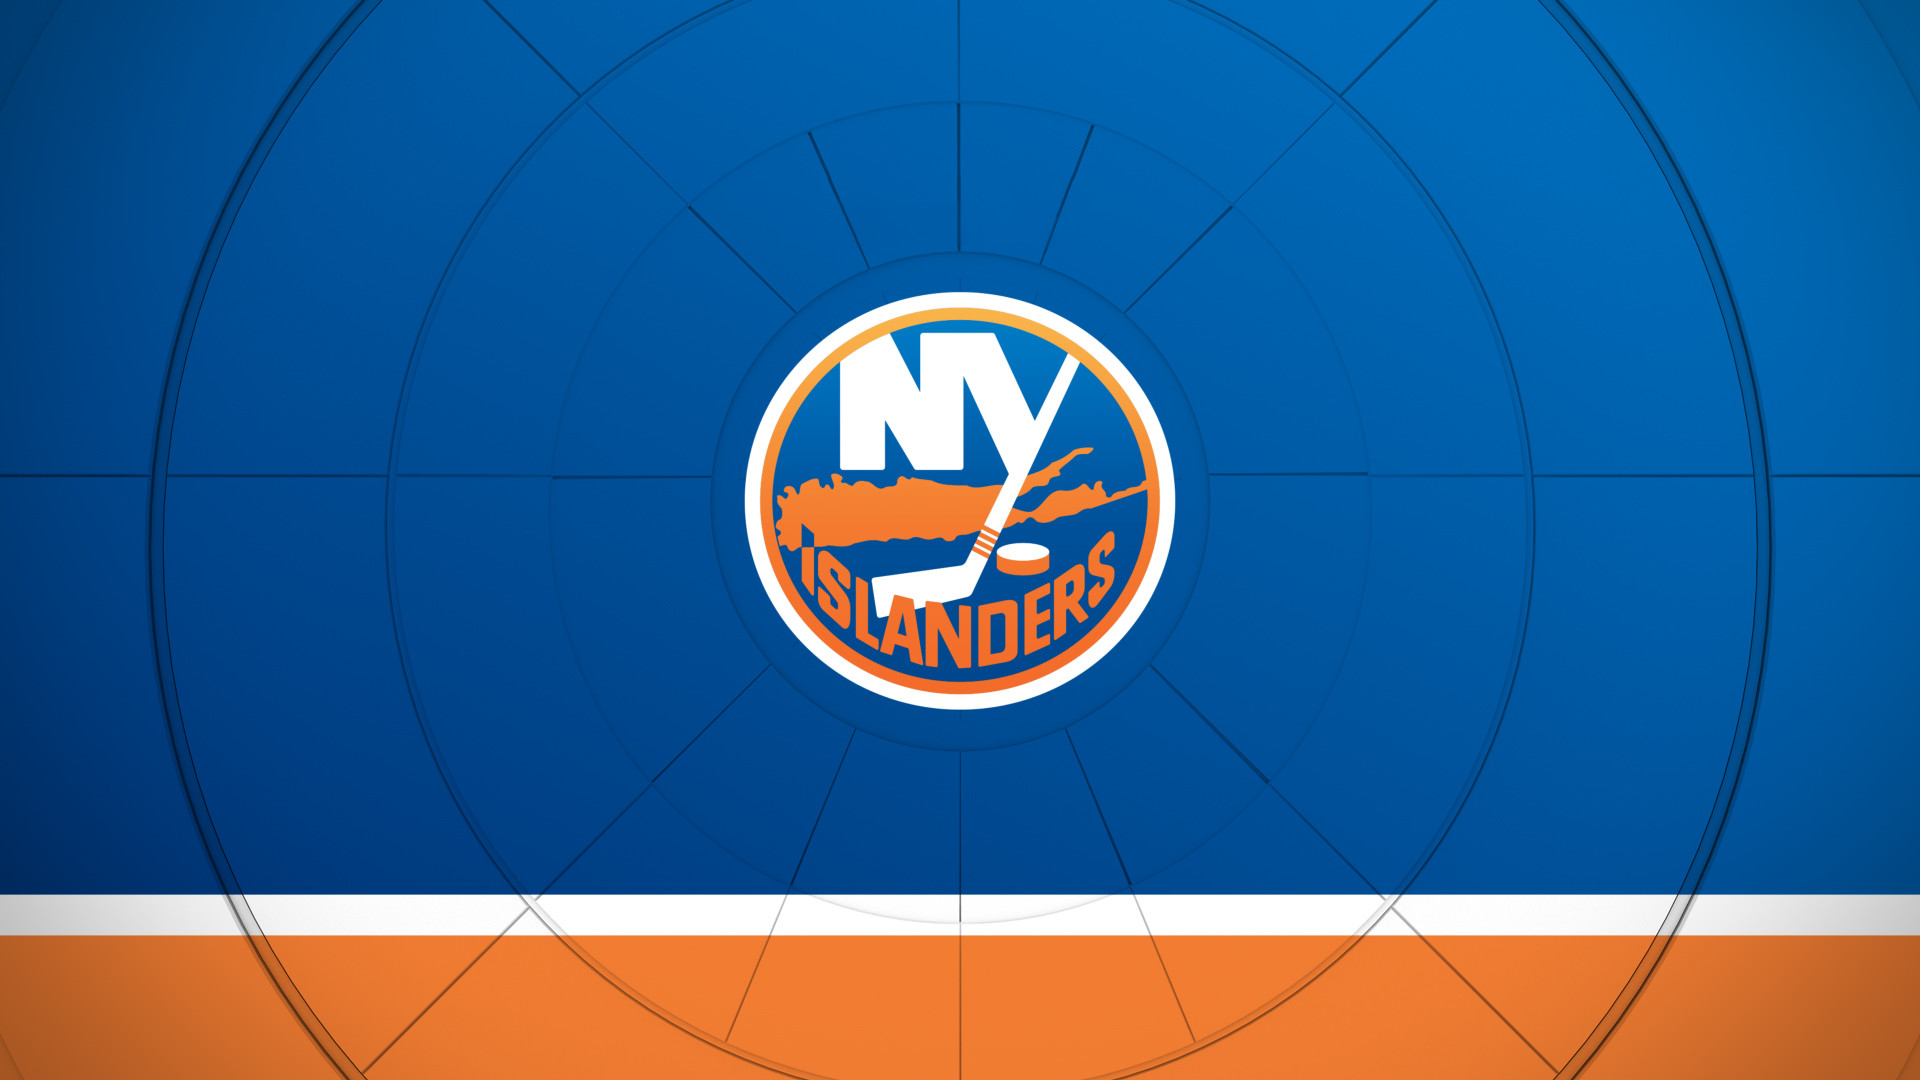 New York Islanders IPhone Wallpaper (65+ Images